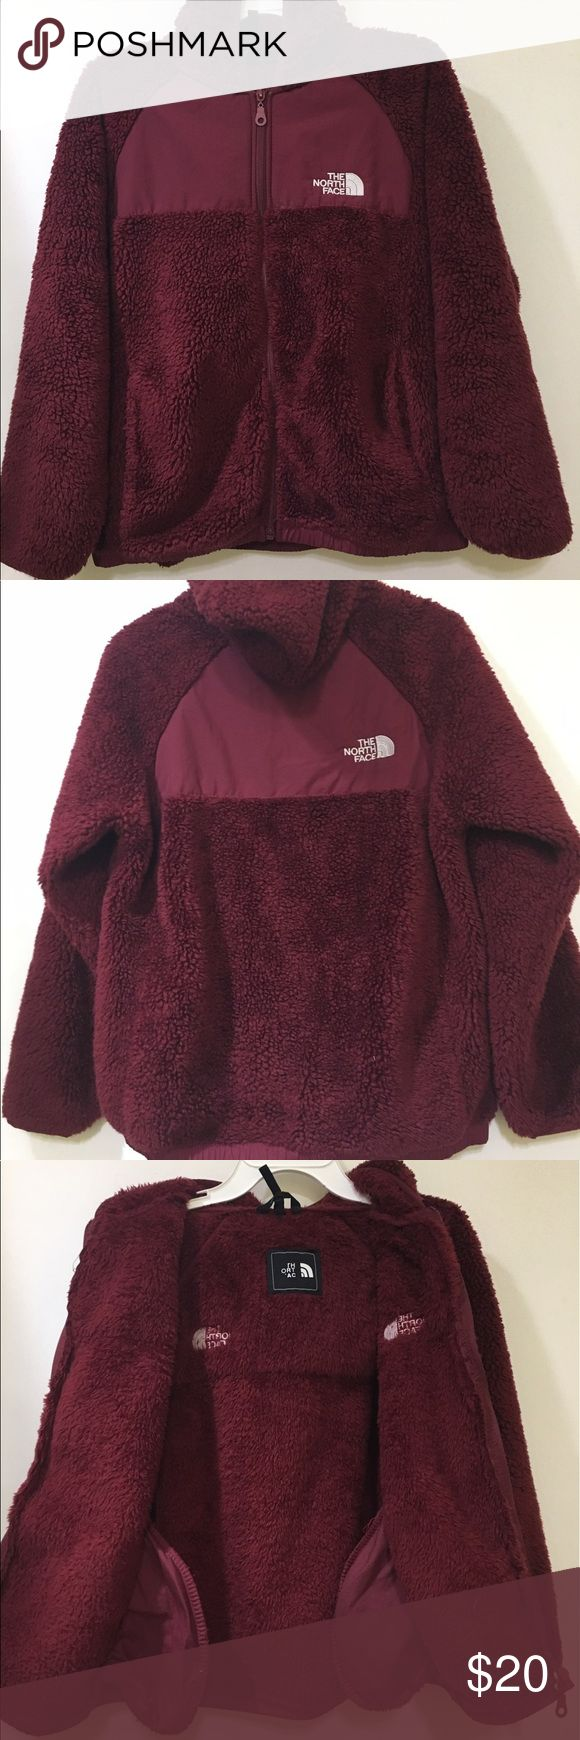 Girls North Face Jacket - Burgundy Ready to layer during cold-weather adventures, this soft midweight fleece hoodie for girls is finished with comfortable ribbed cuffs and hem. Embroidered logo on front and back. Gently used. Clean. The North Face Jackets & Coats